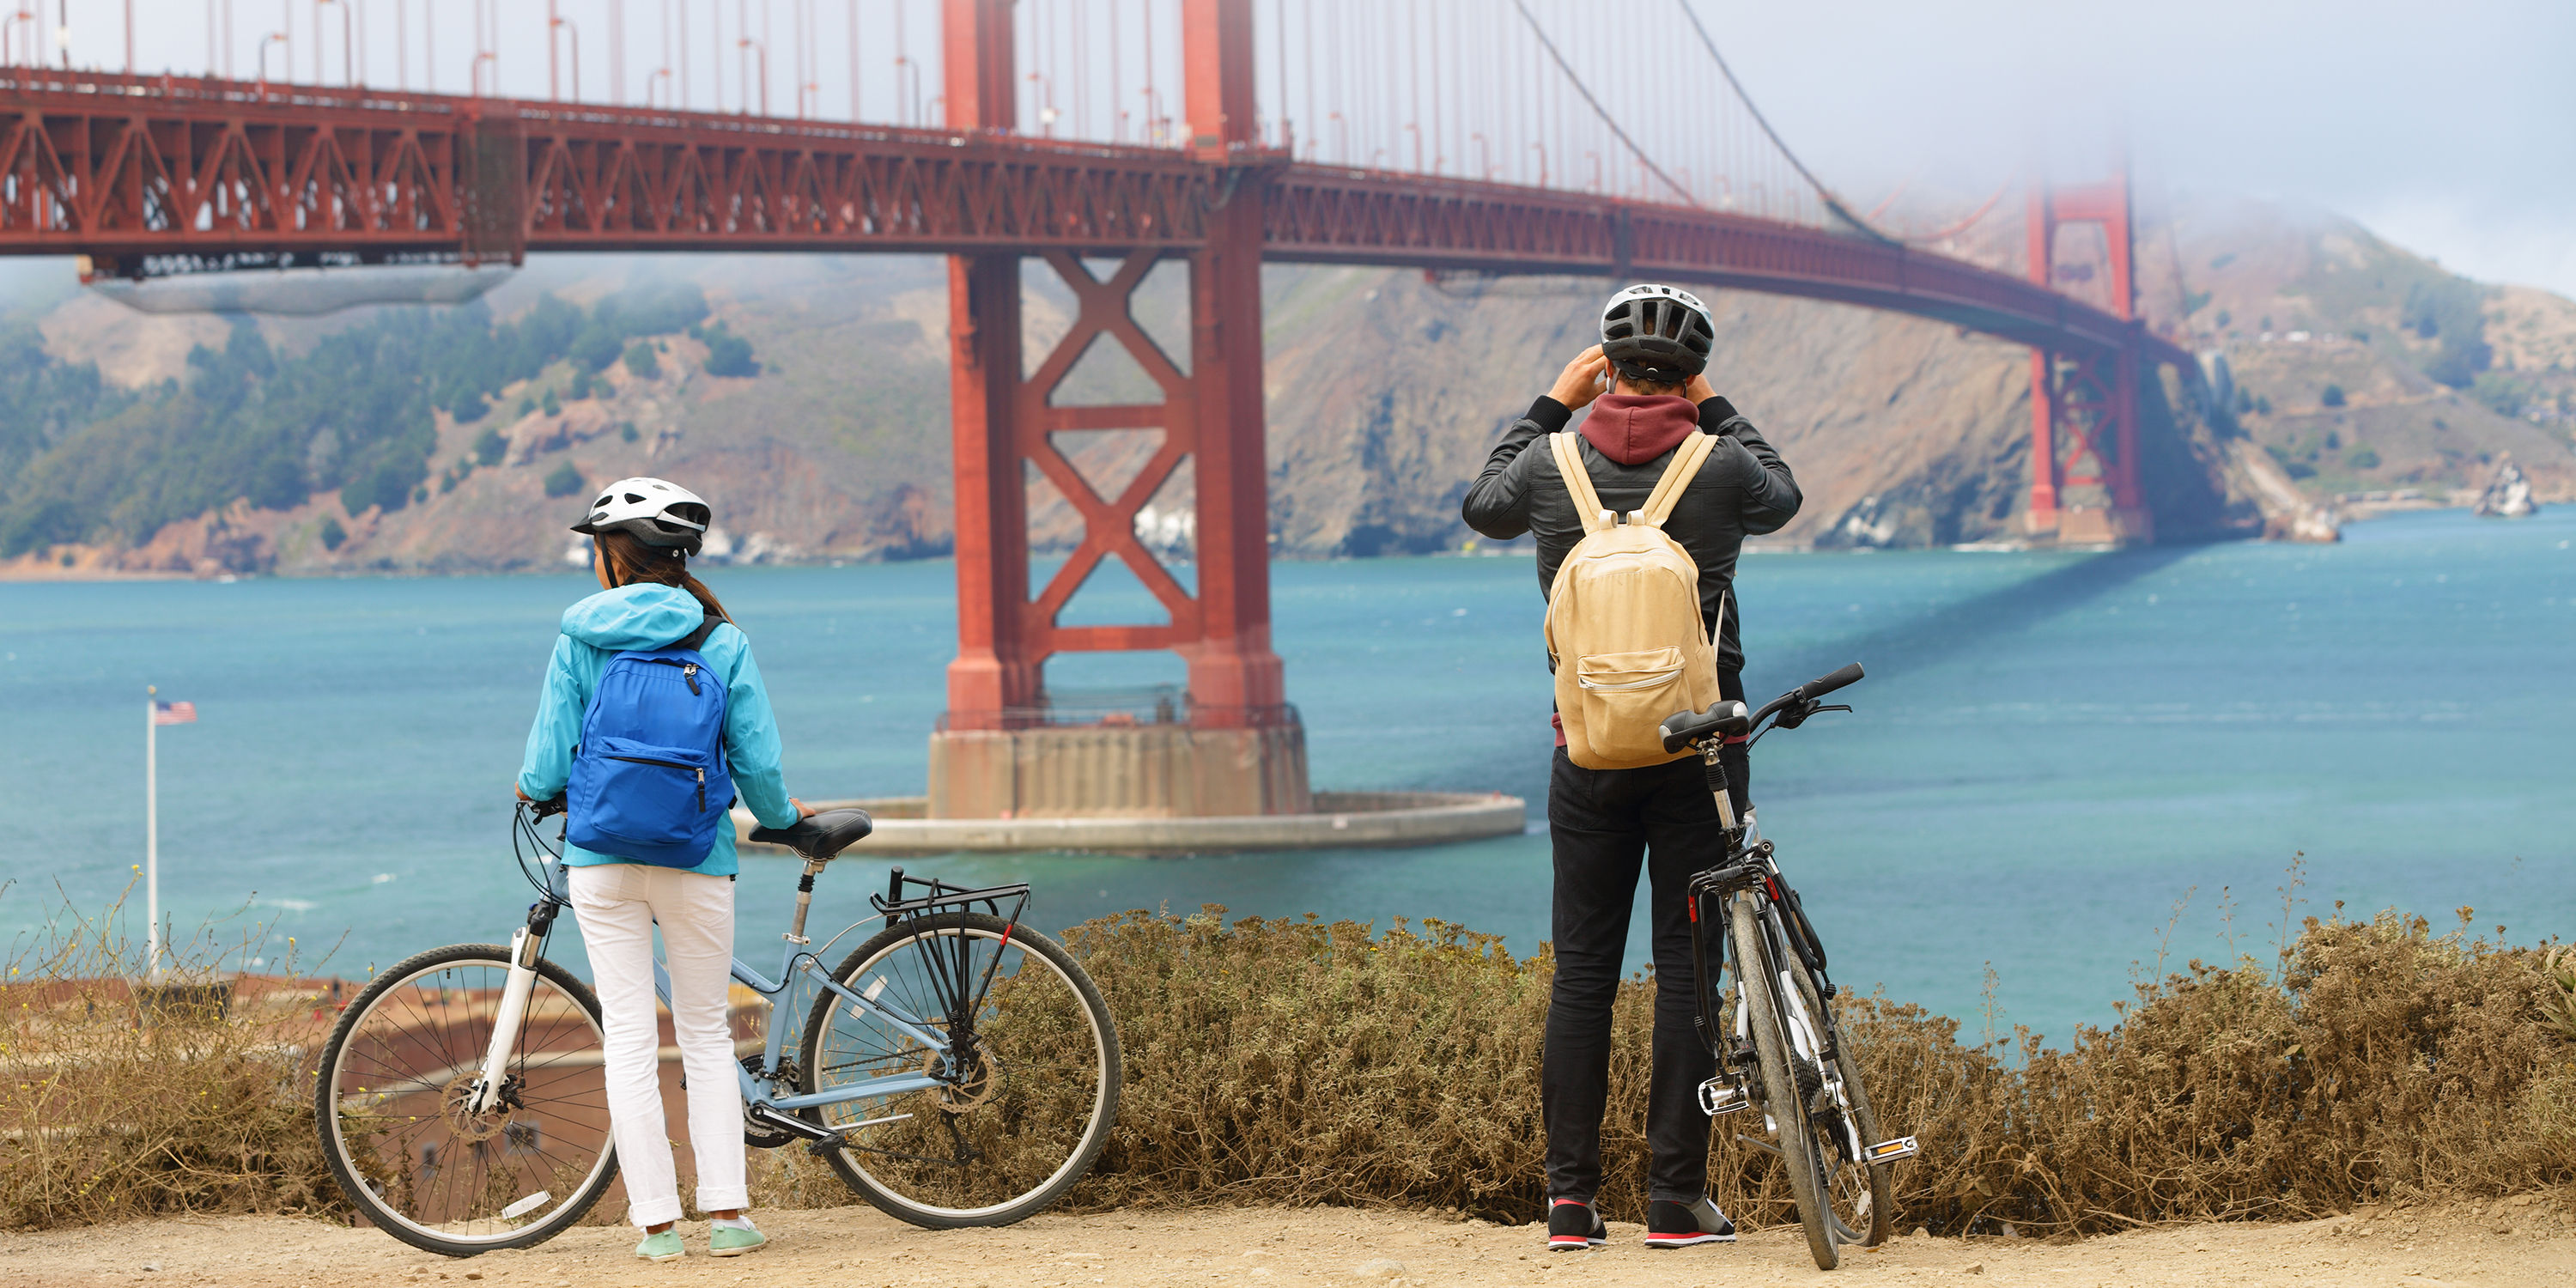 Incredible Guided Bike Tours in the West | Via